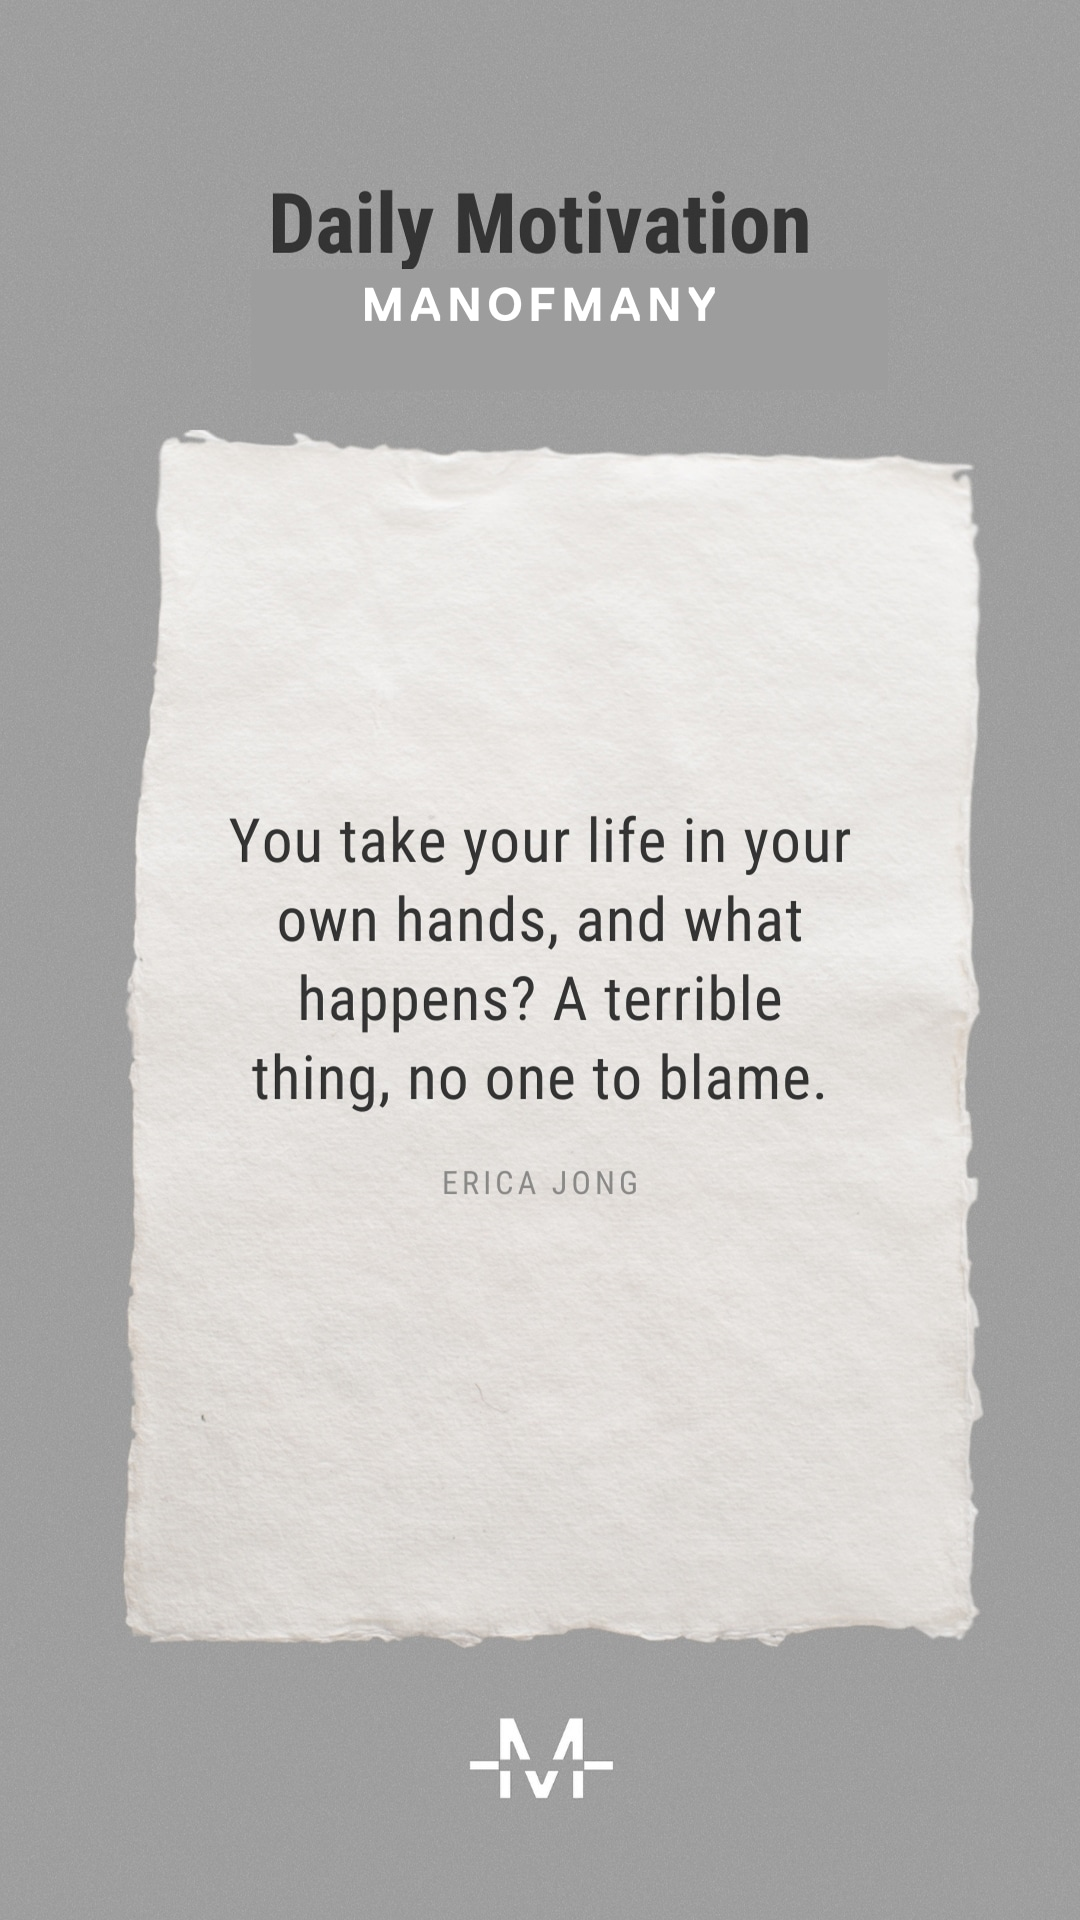 You take your life in your own hands, and what happens? A terrible thing, no one to blame. –Erica Jong quote